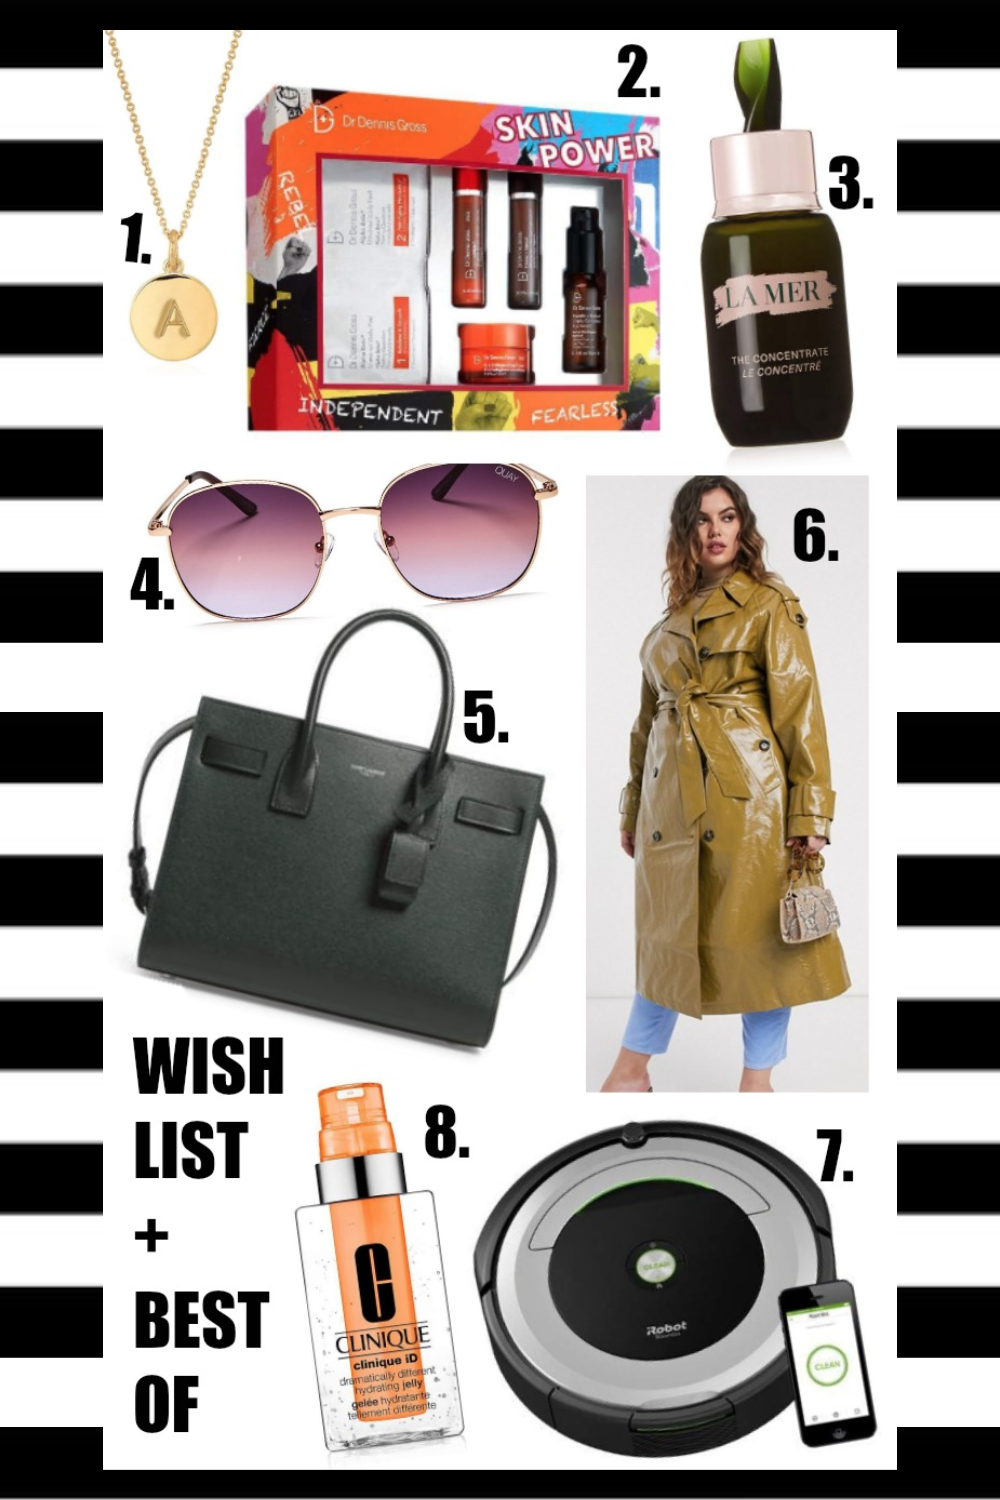 2019 CHRISTMAS WISHLIST + BEST OFF